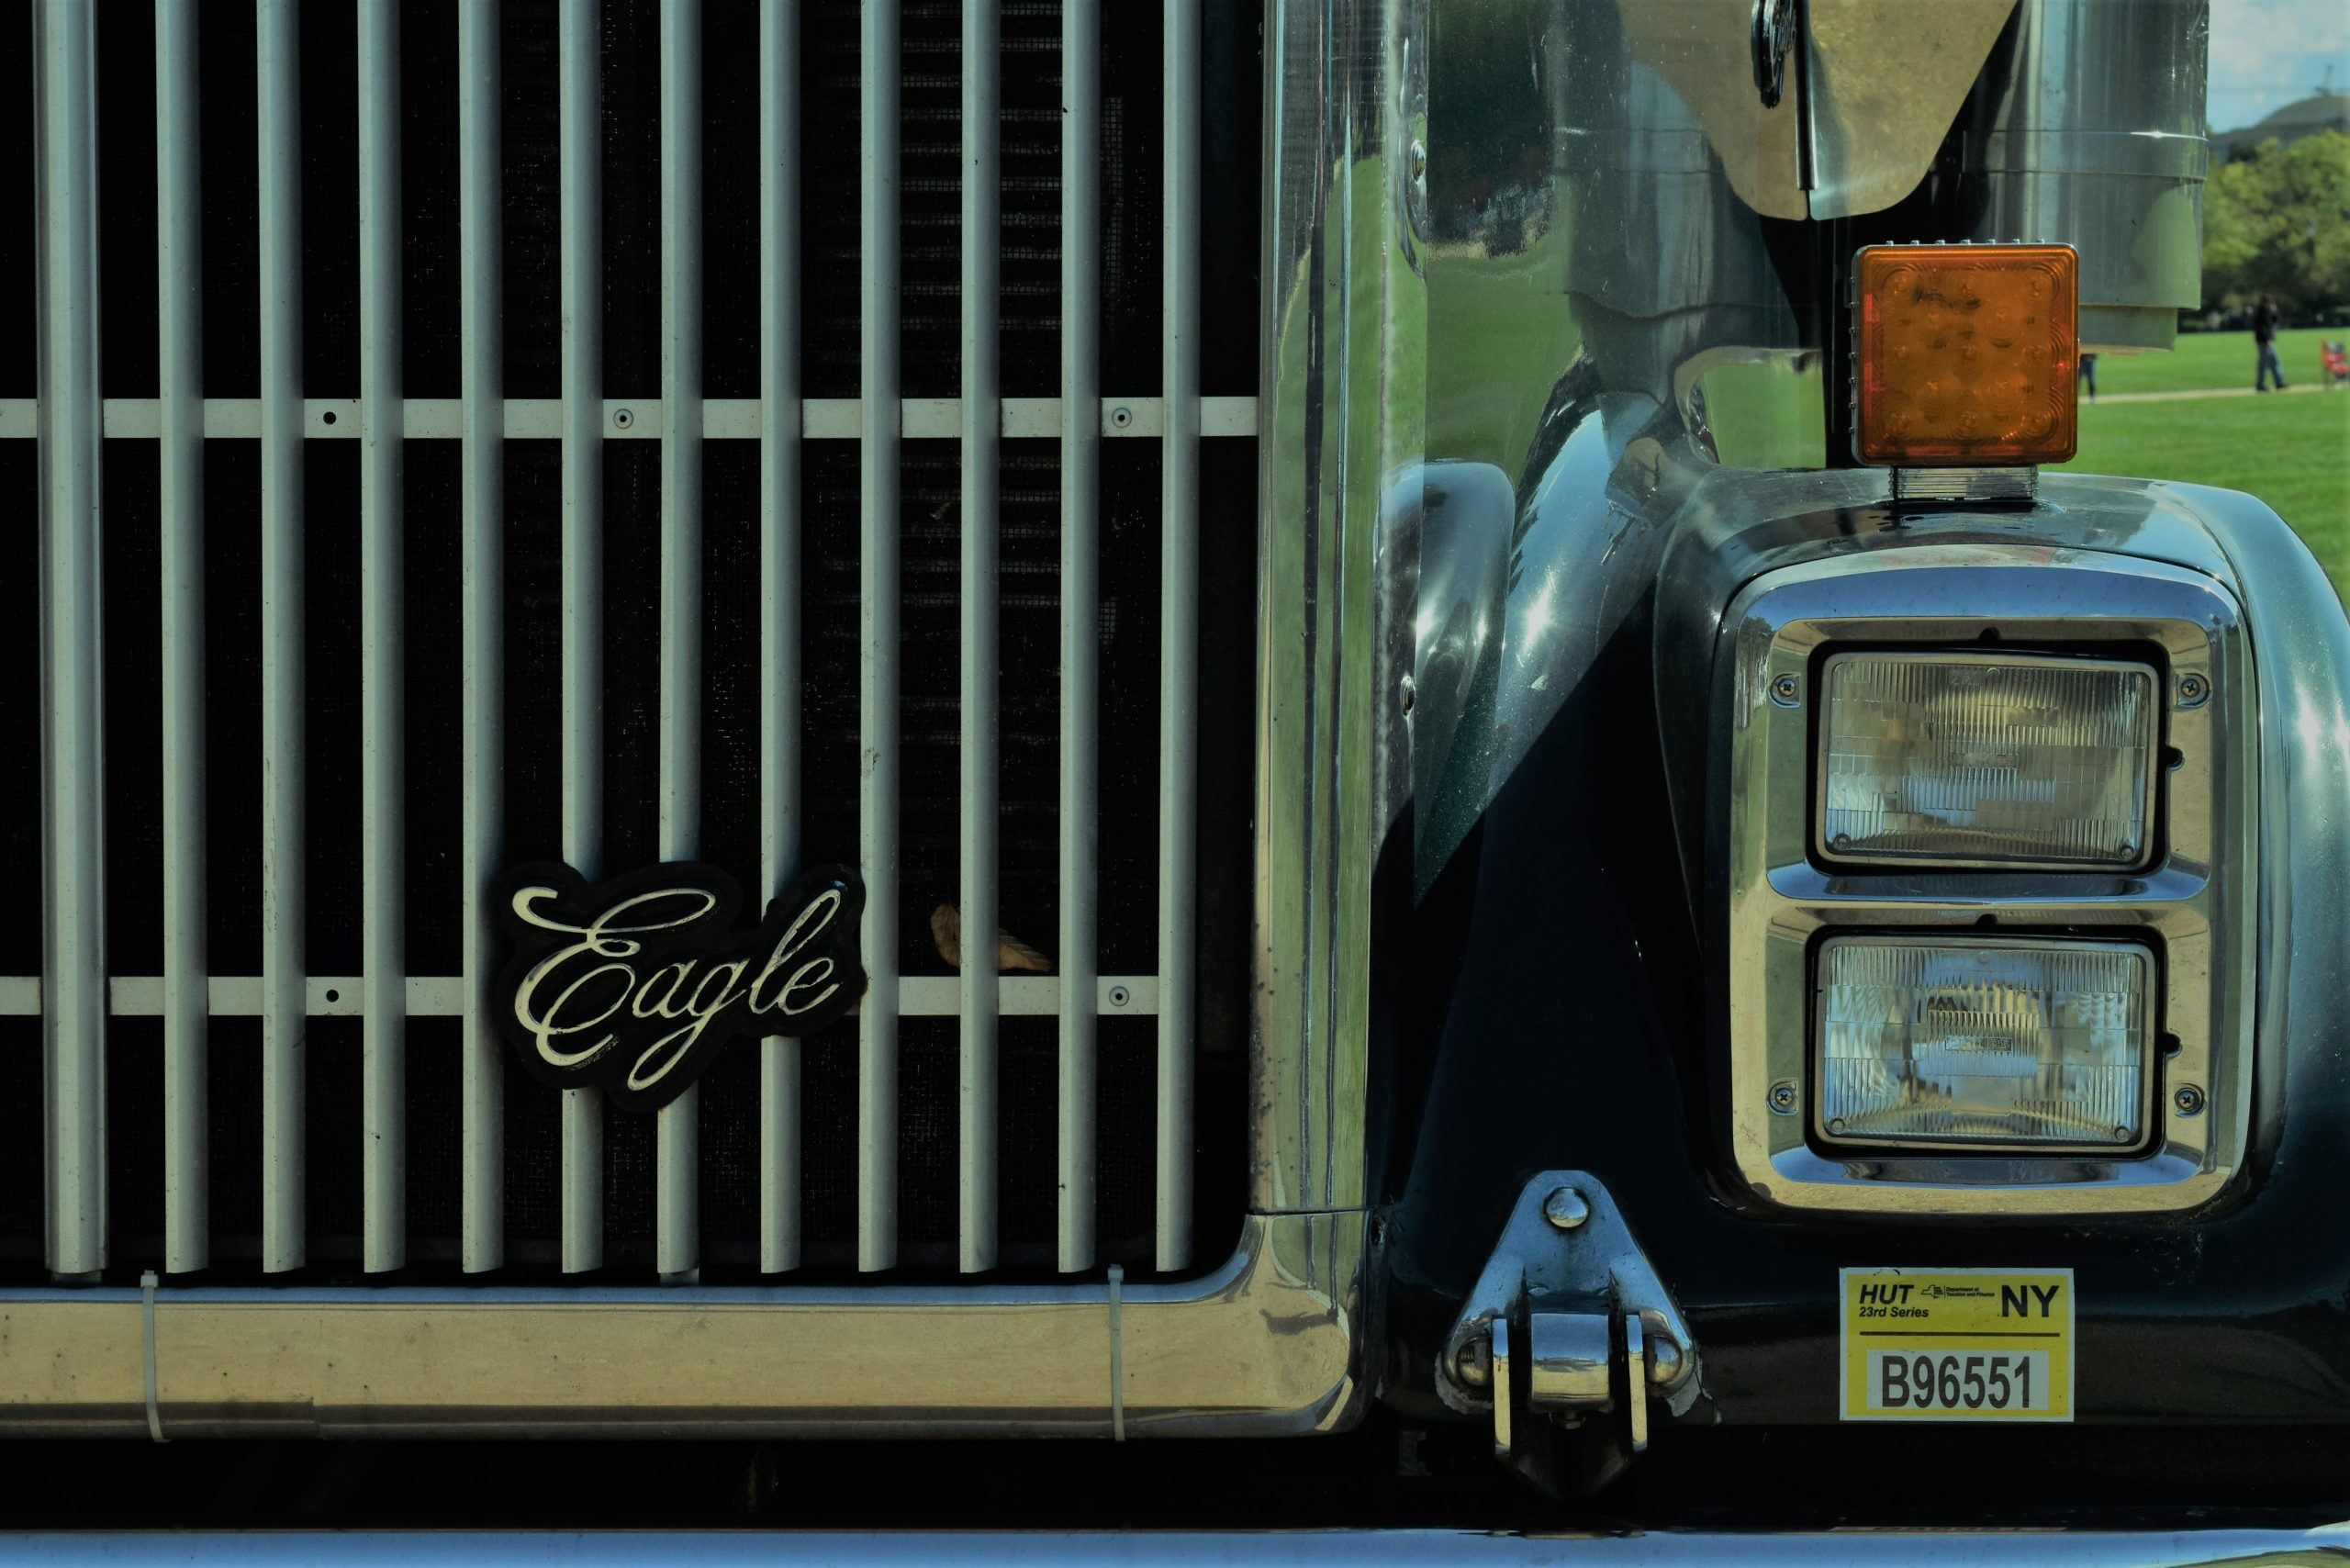 international eagle logo on the front grille of semi-truck